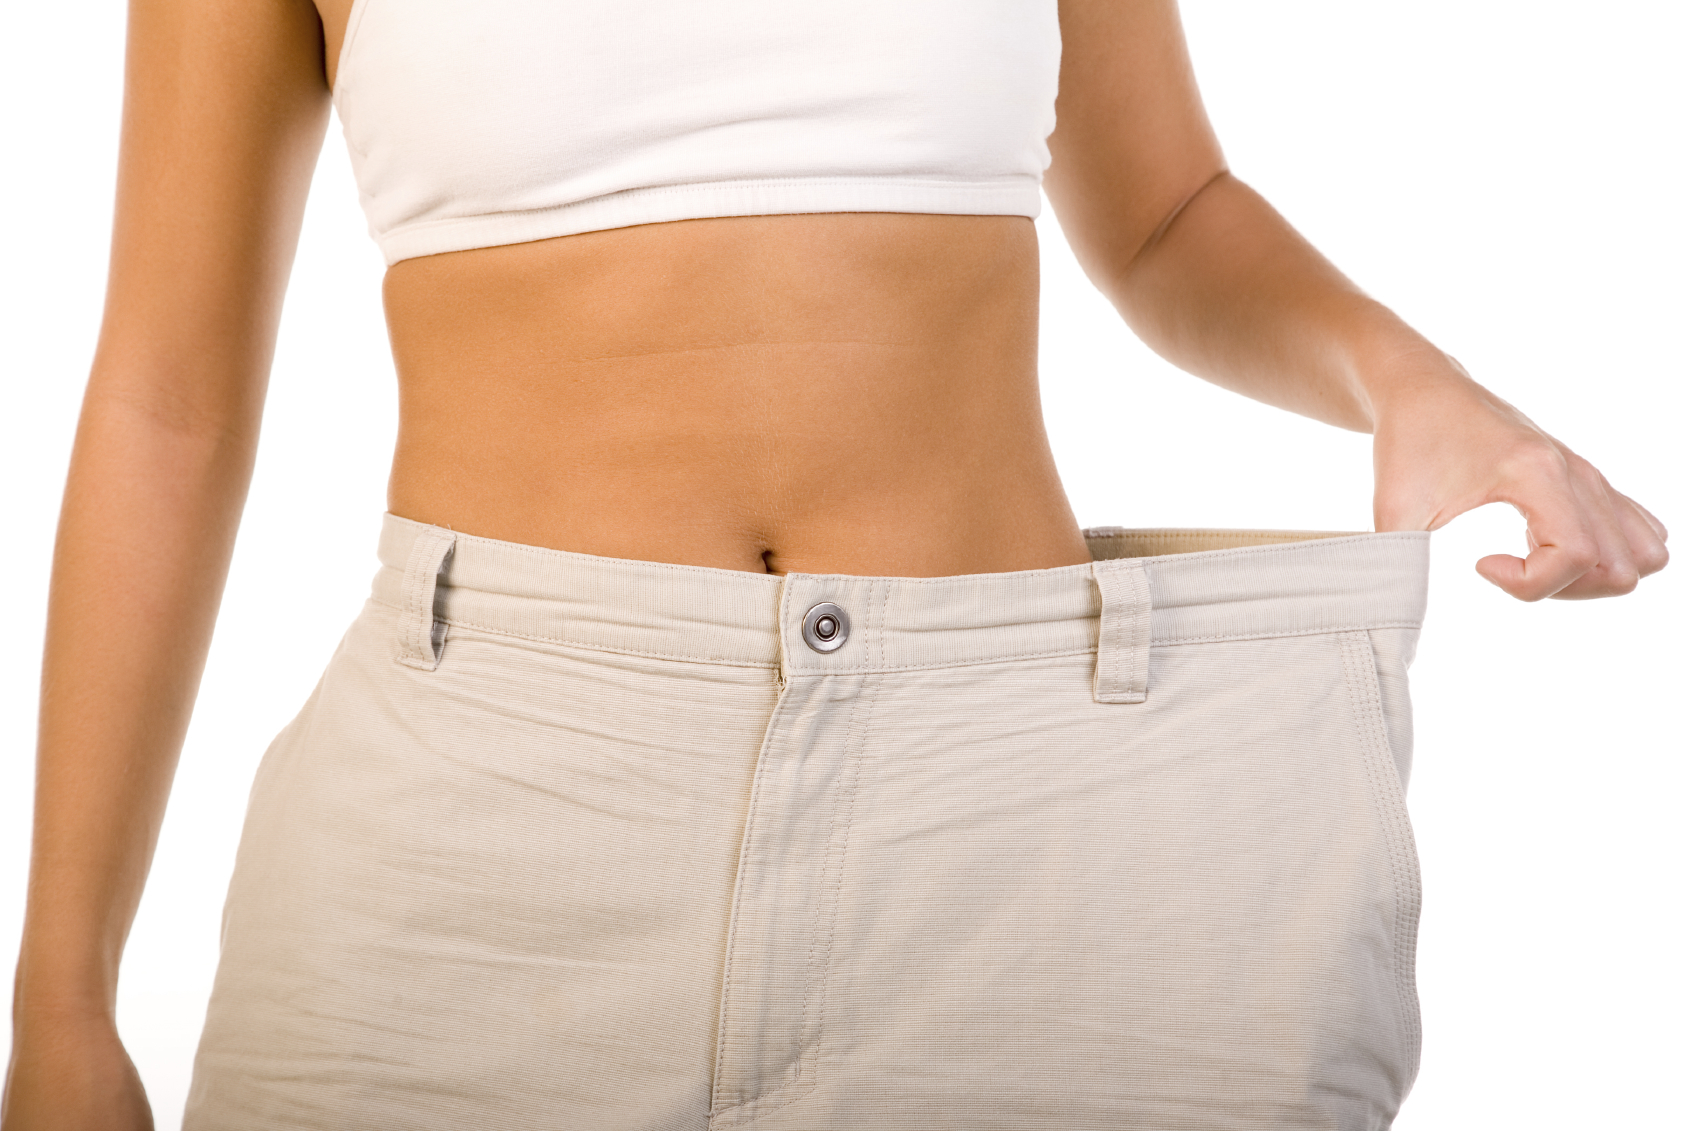 Safe diabetic slimming options